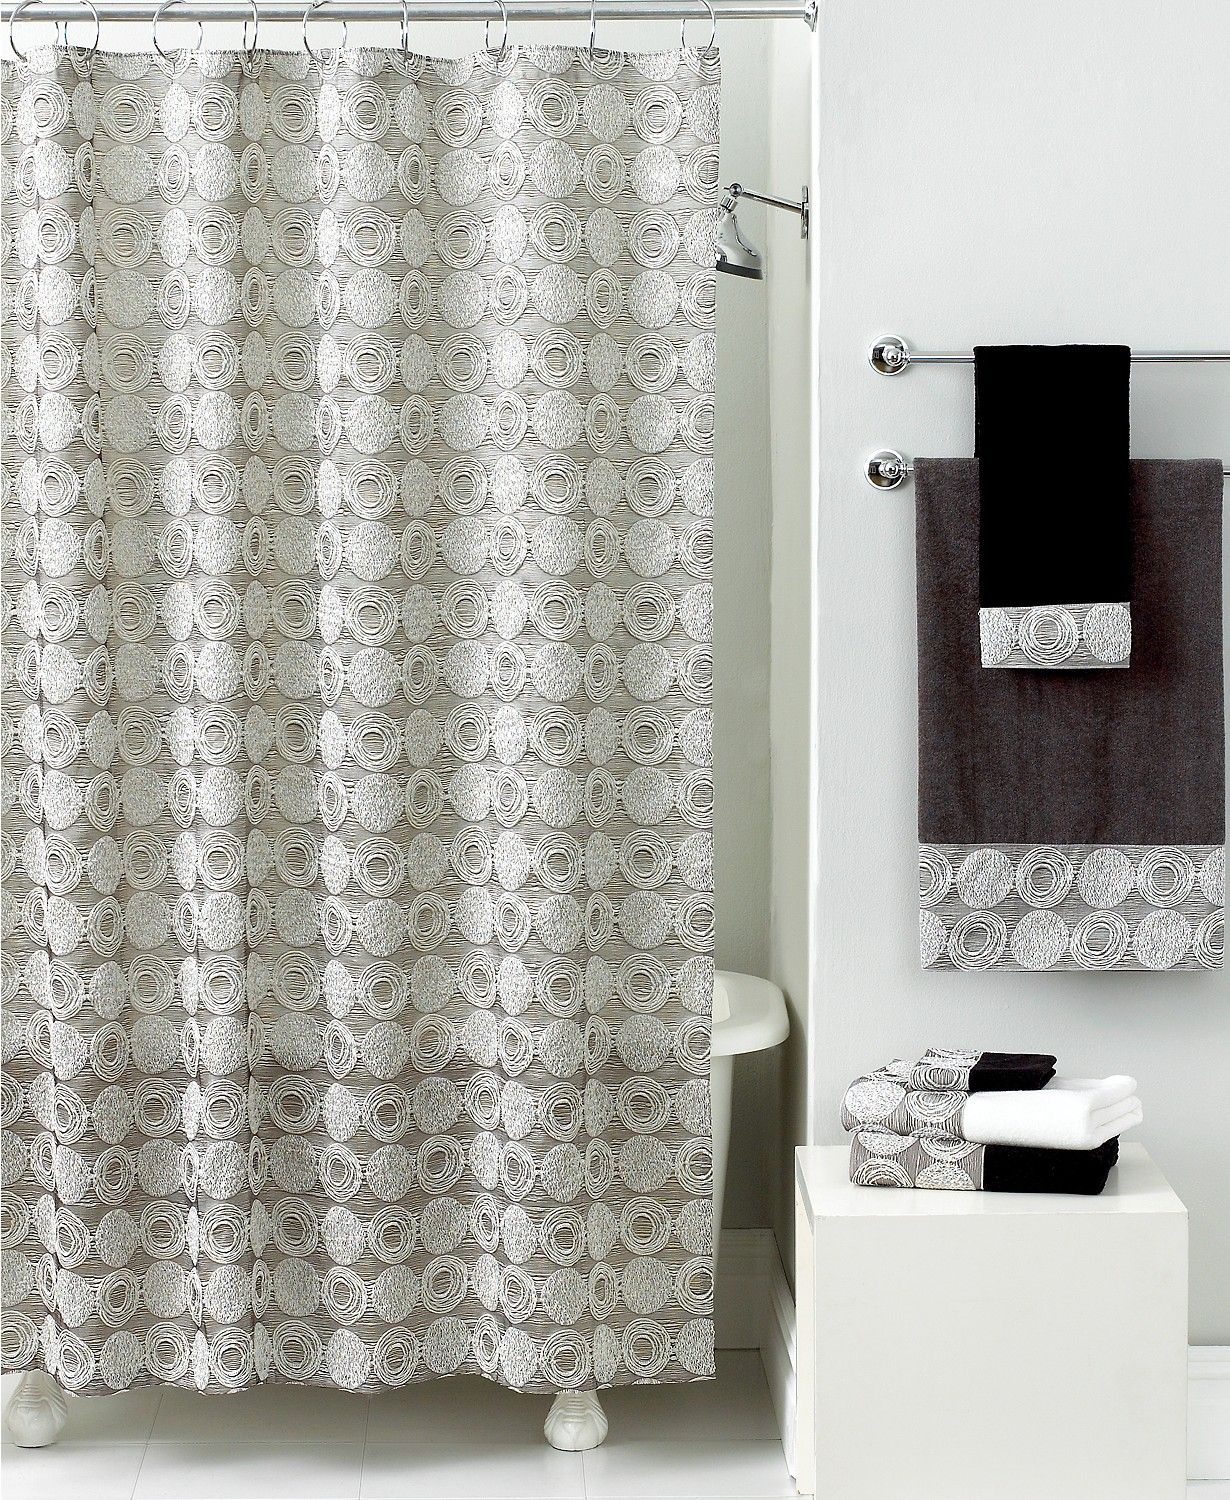 Avanti Bath Accessories Galaxy Shower Curtain Reviews